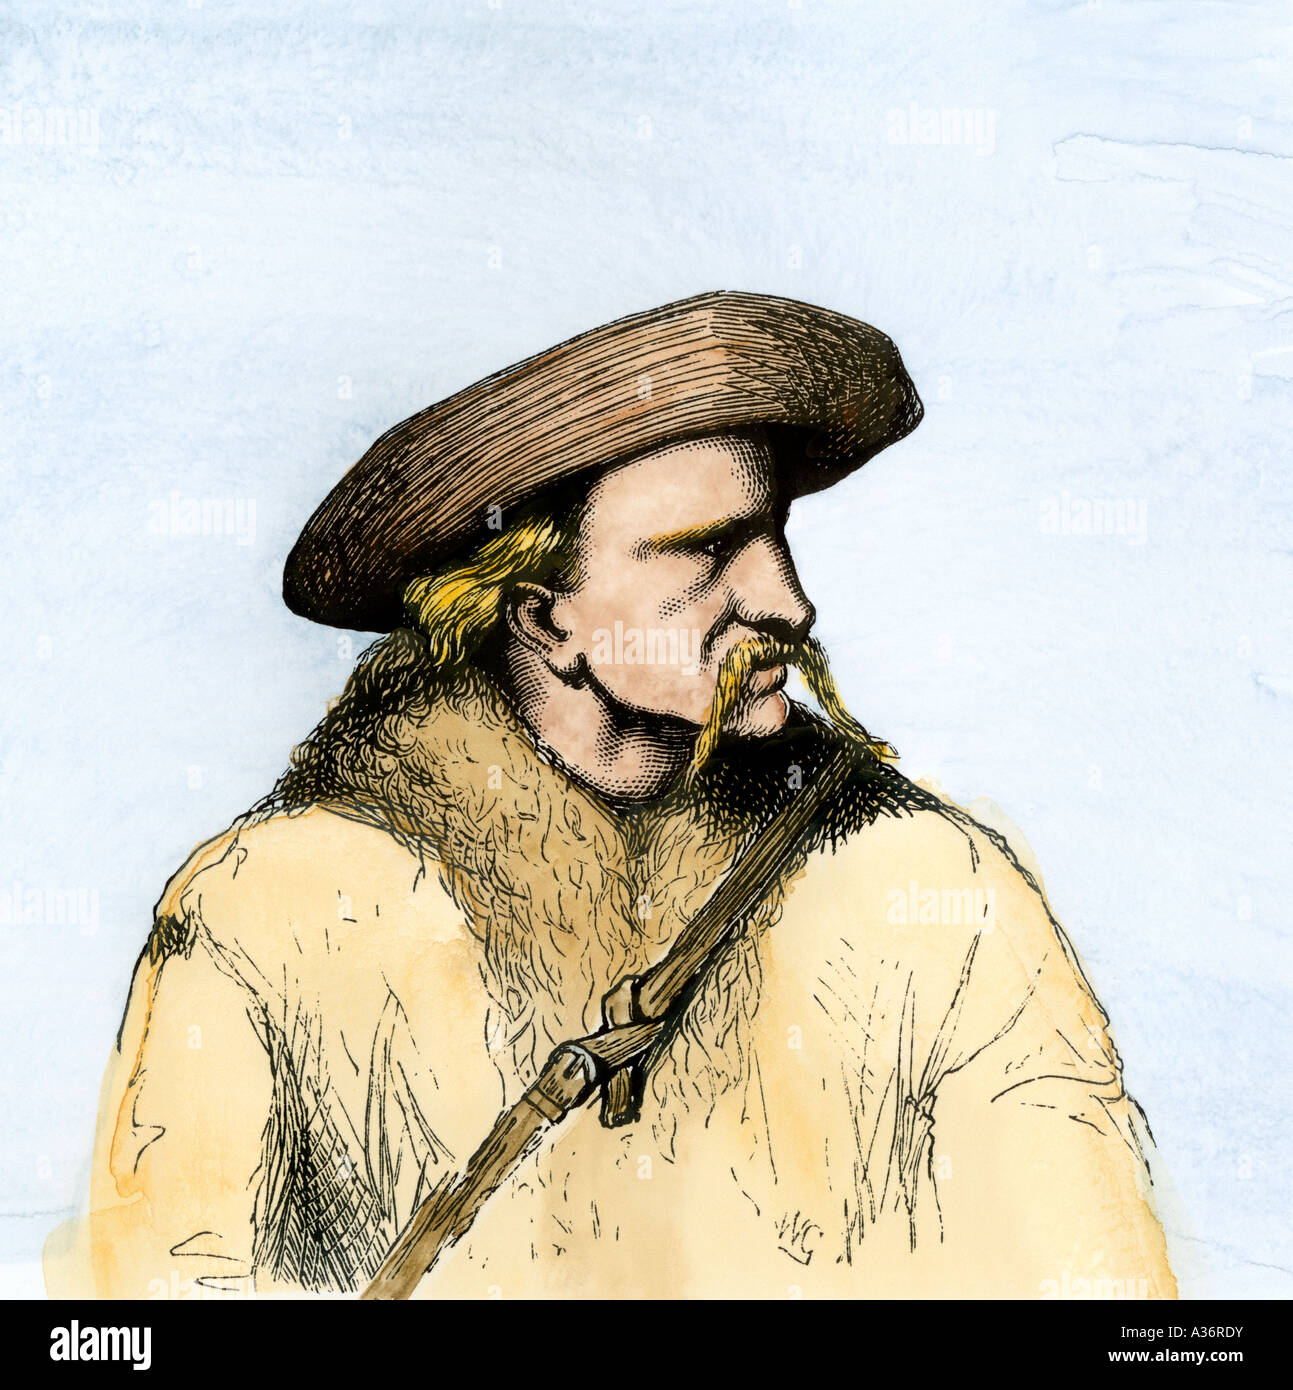 James Butler Hickok better known as Wild Bill Hickok. Hand-colored halftone of an illustration - Stock Image